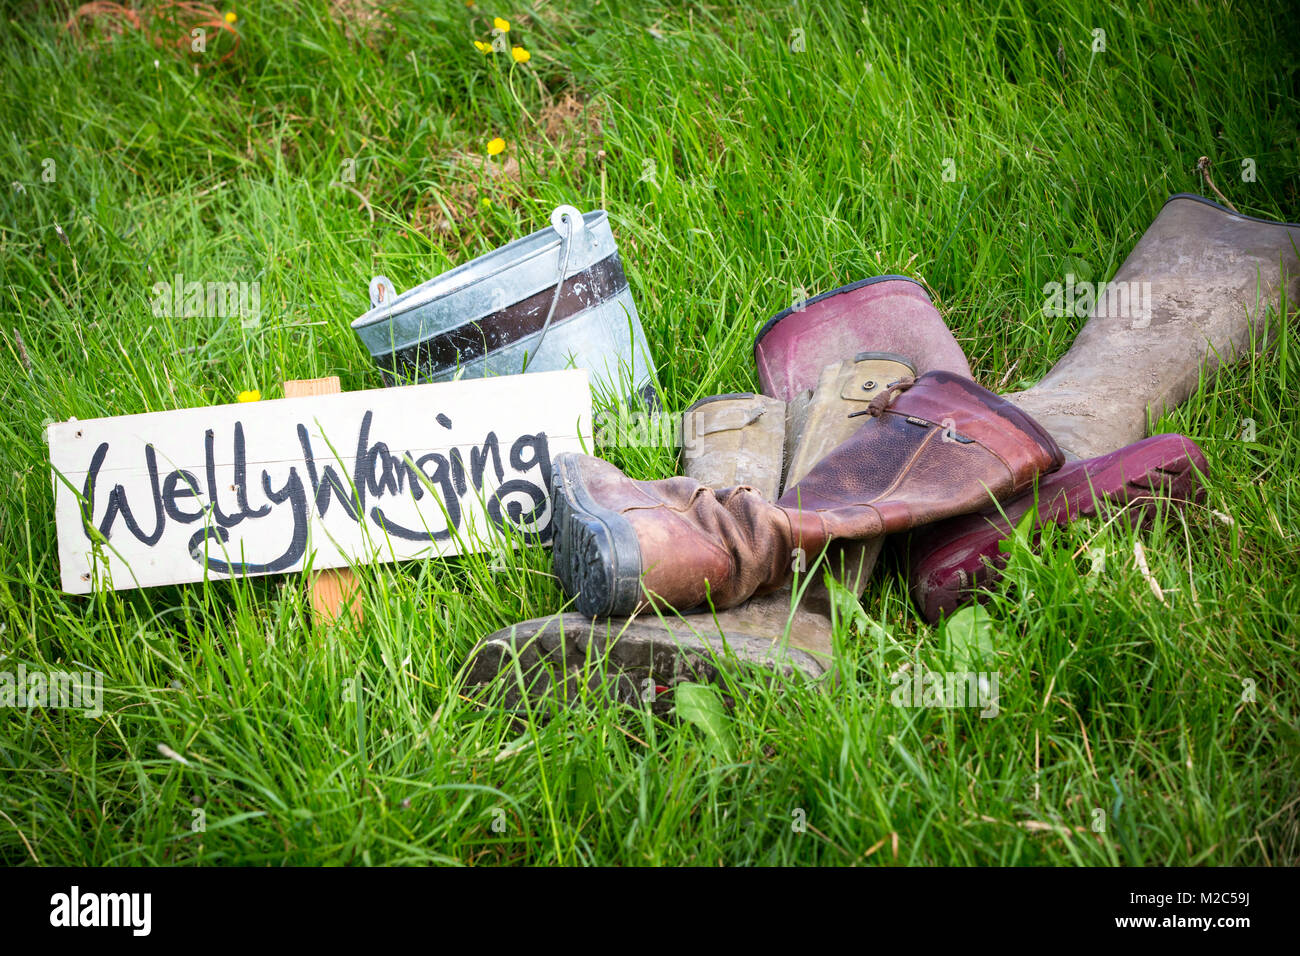 Pile of boots on grass in field, with handwritten 'Welly Wanging' sign Stock Photo